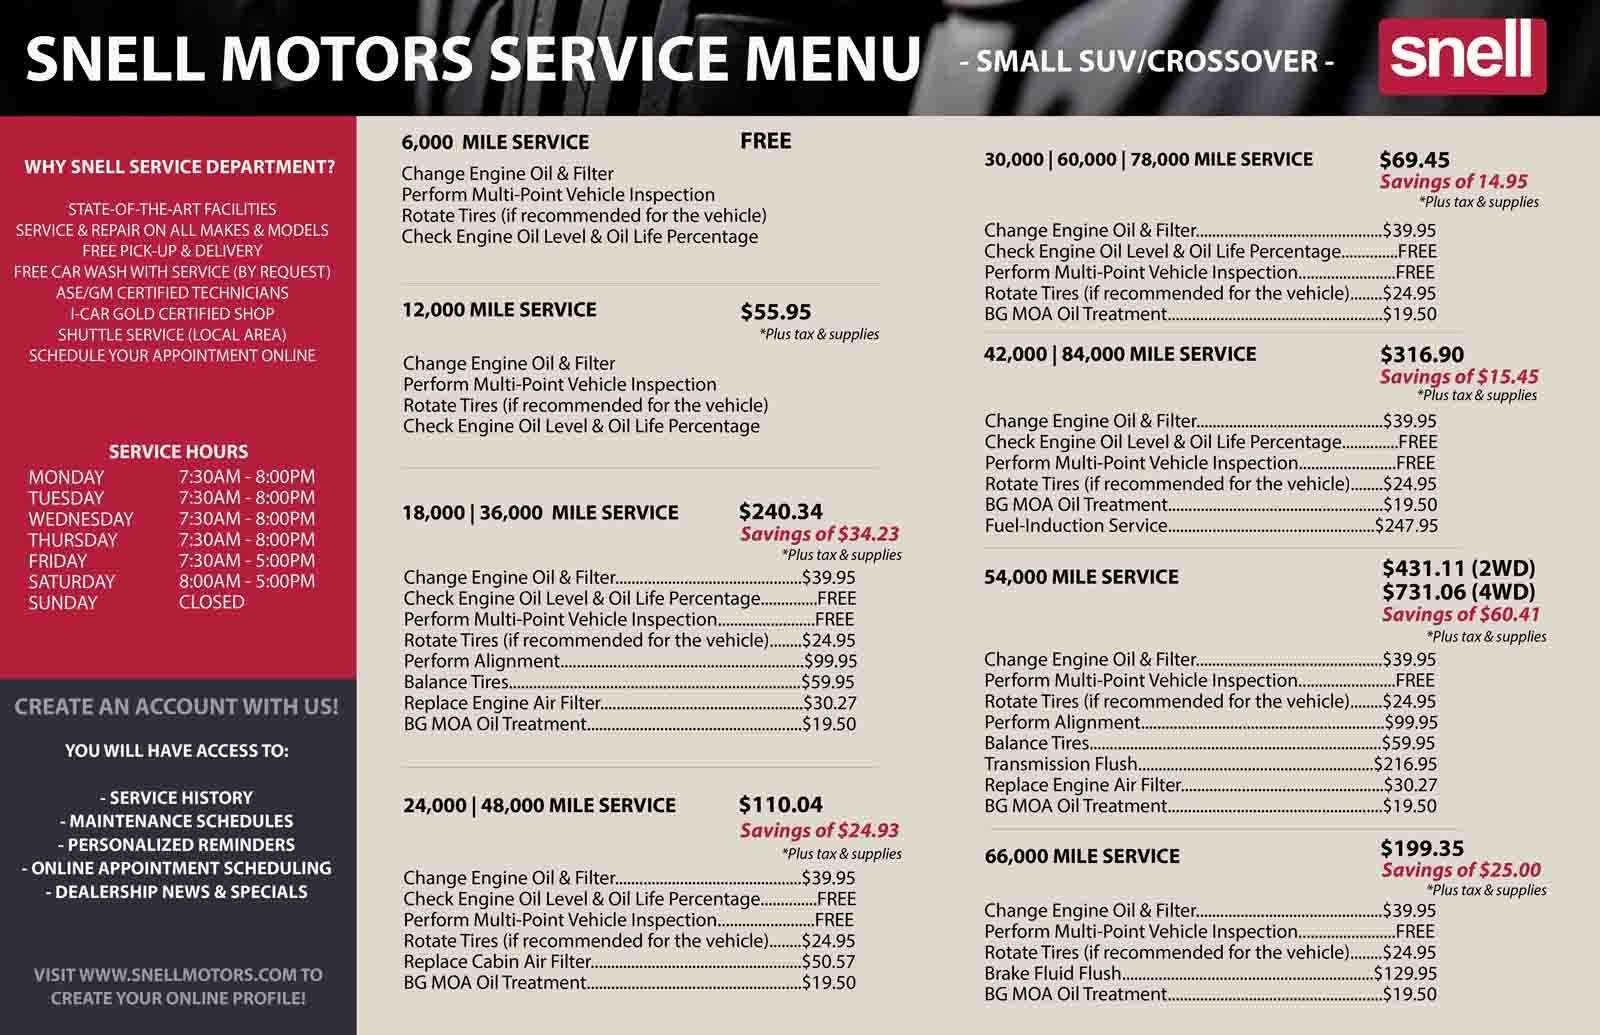 Small SUVs and Crossovers Service Menu